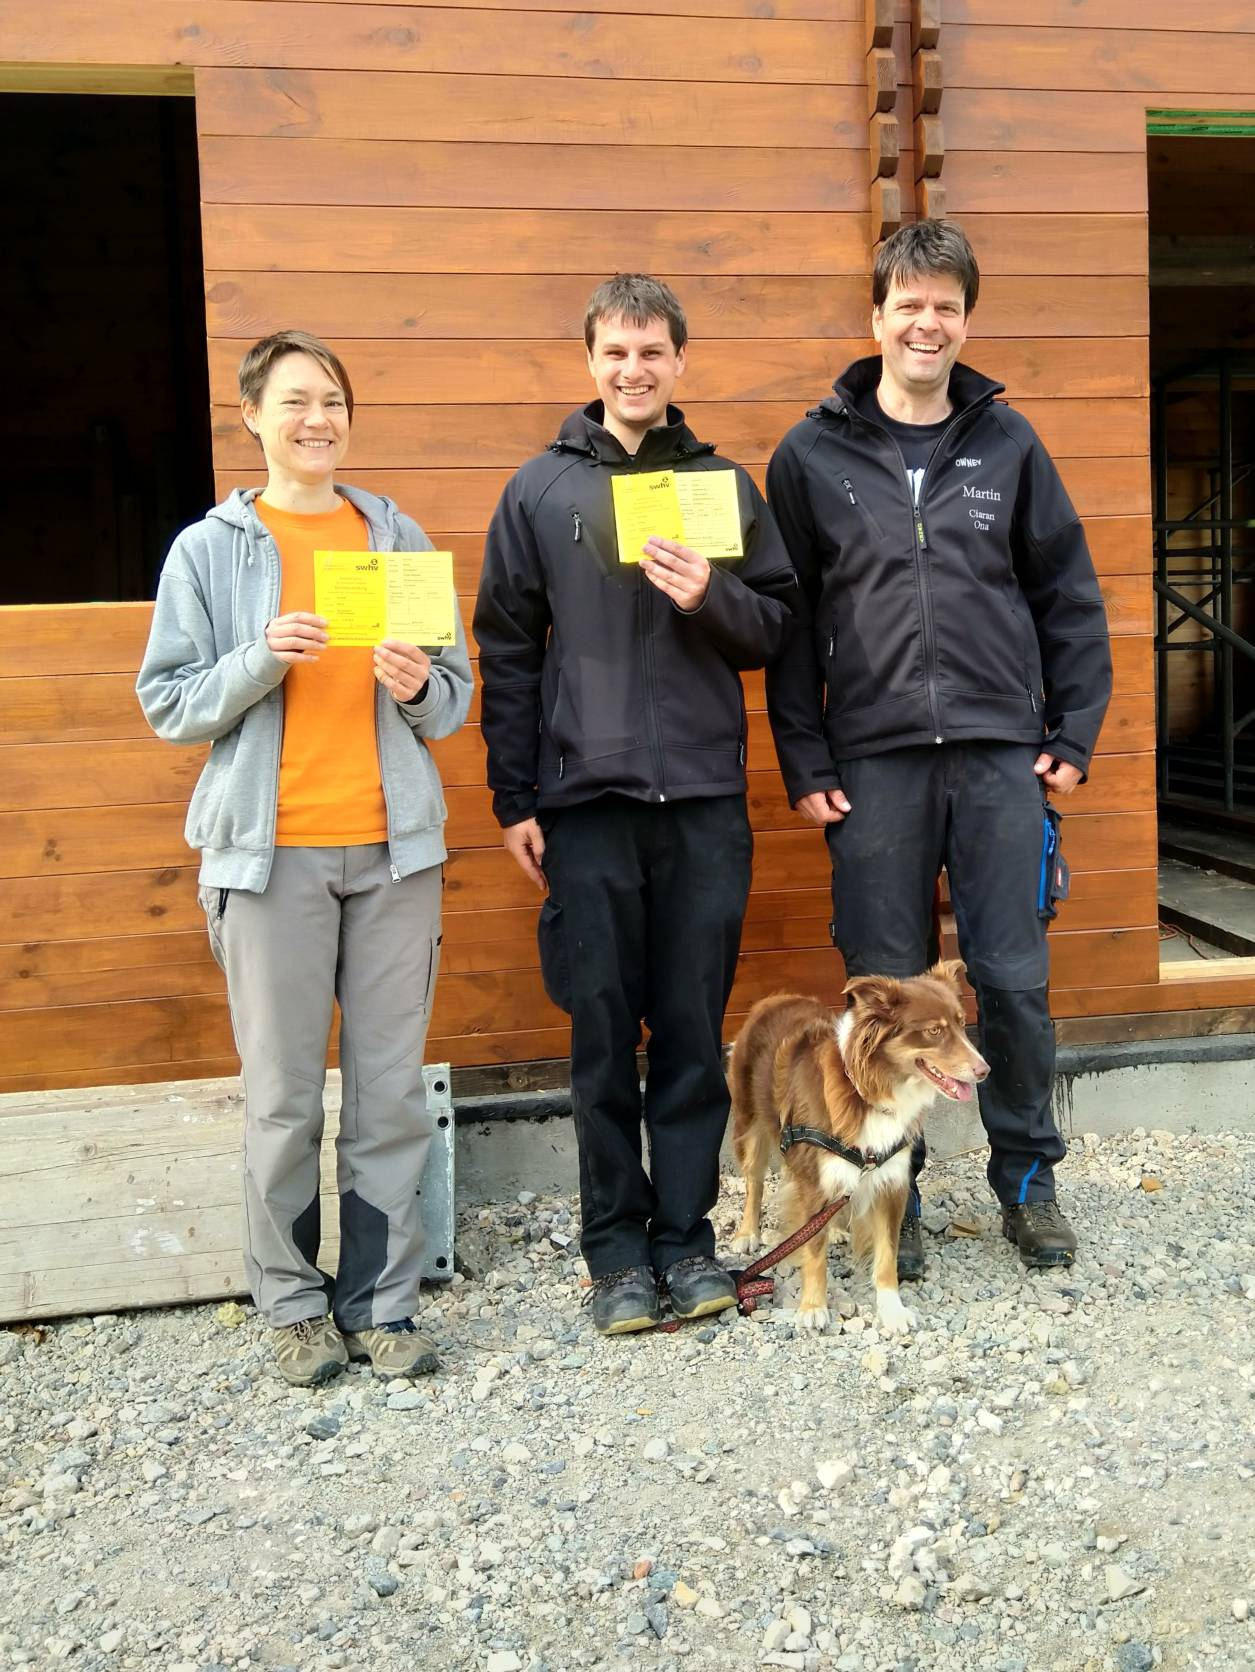 2 neue Trainer im Rally-Obedience